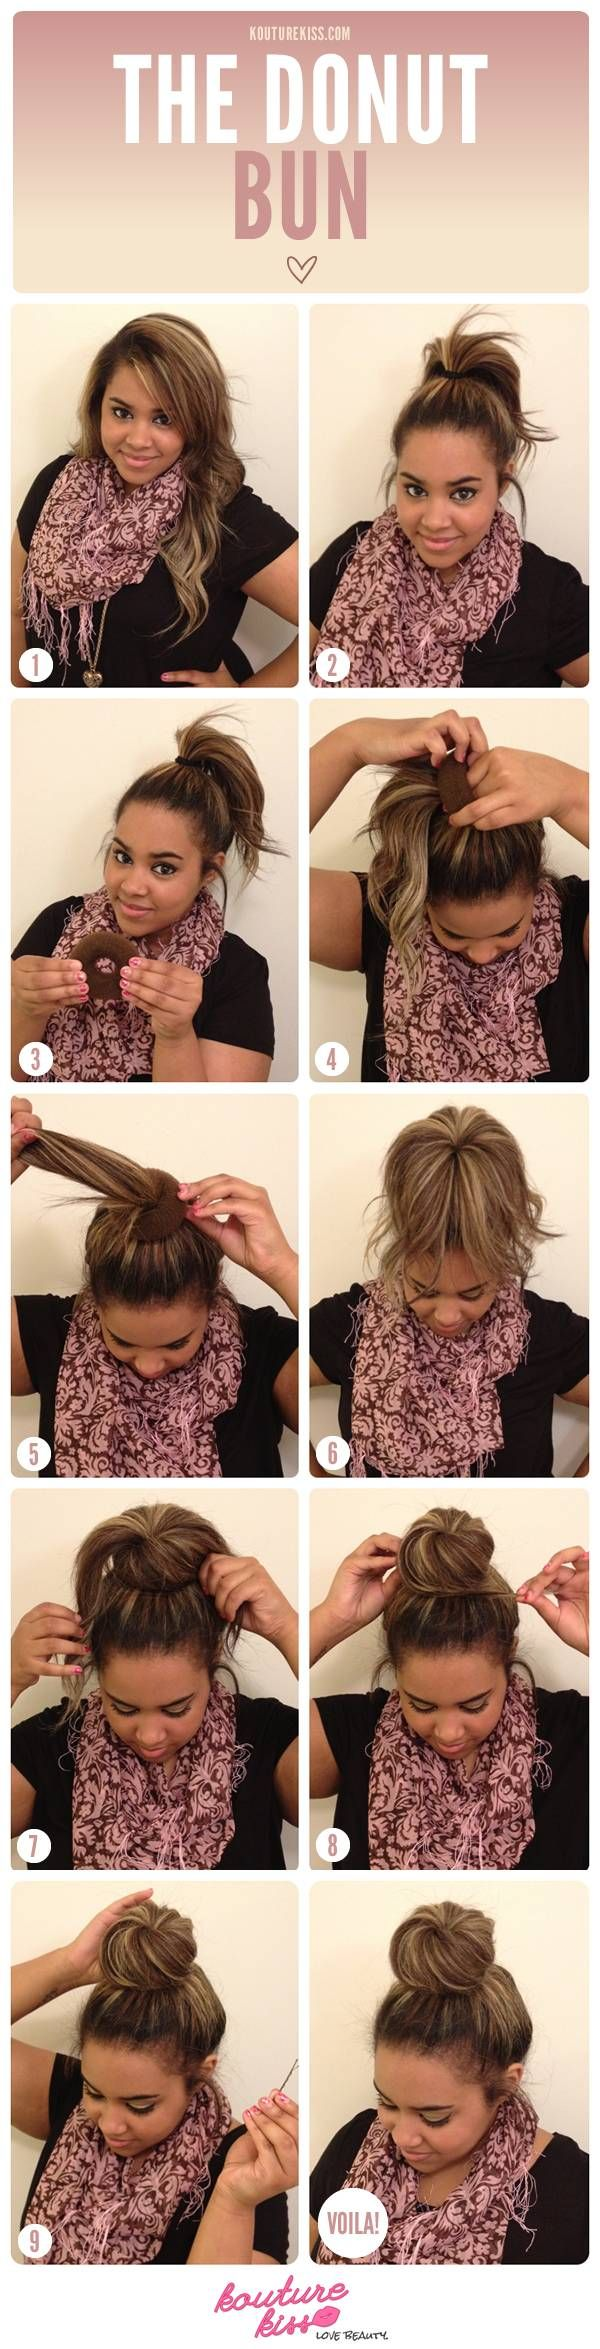 25 Ways That You Can Do Your Hair This Summer To Get Yourself A Fresh New Look - Dose - Your Daily Dose of Amazing